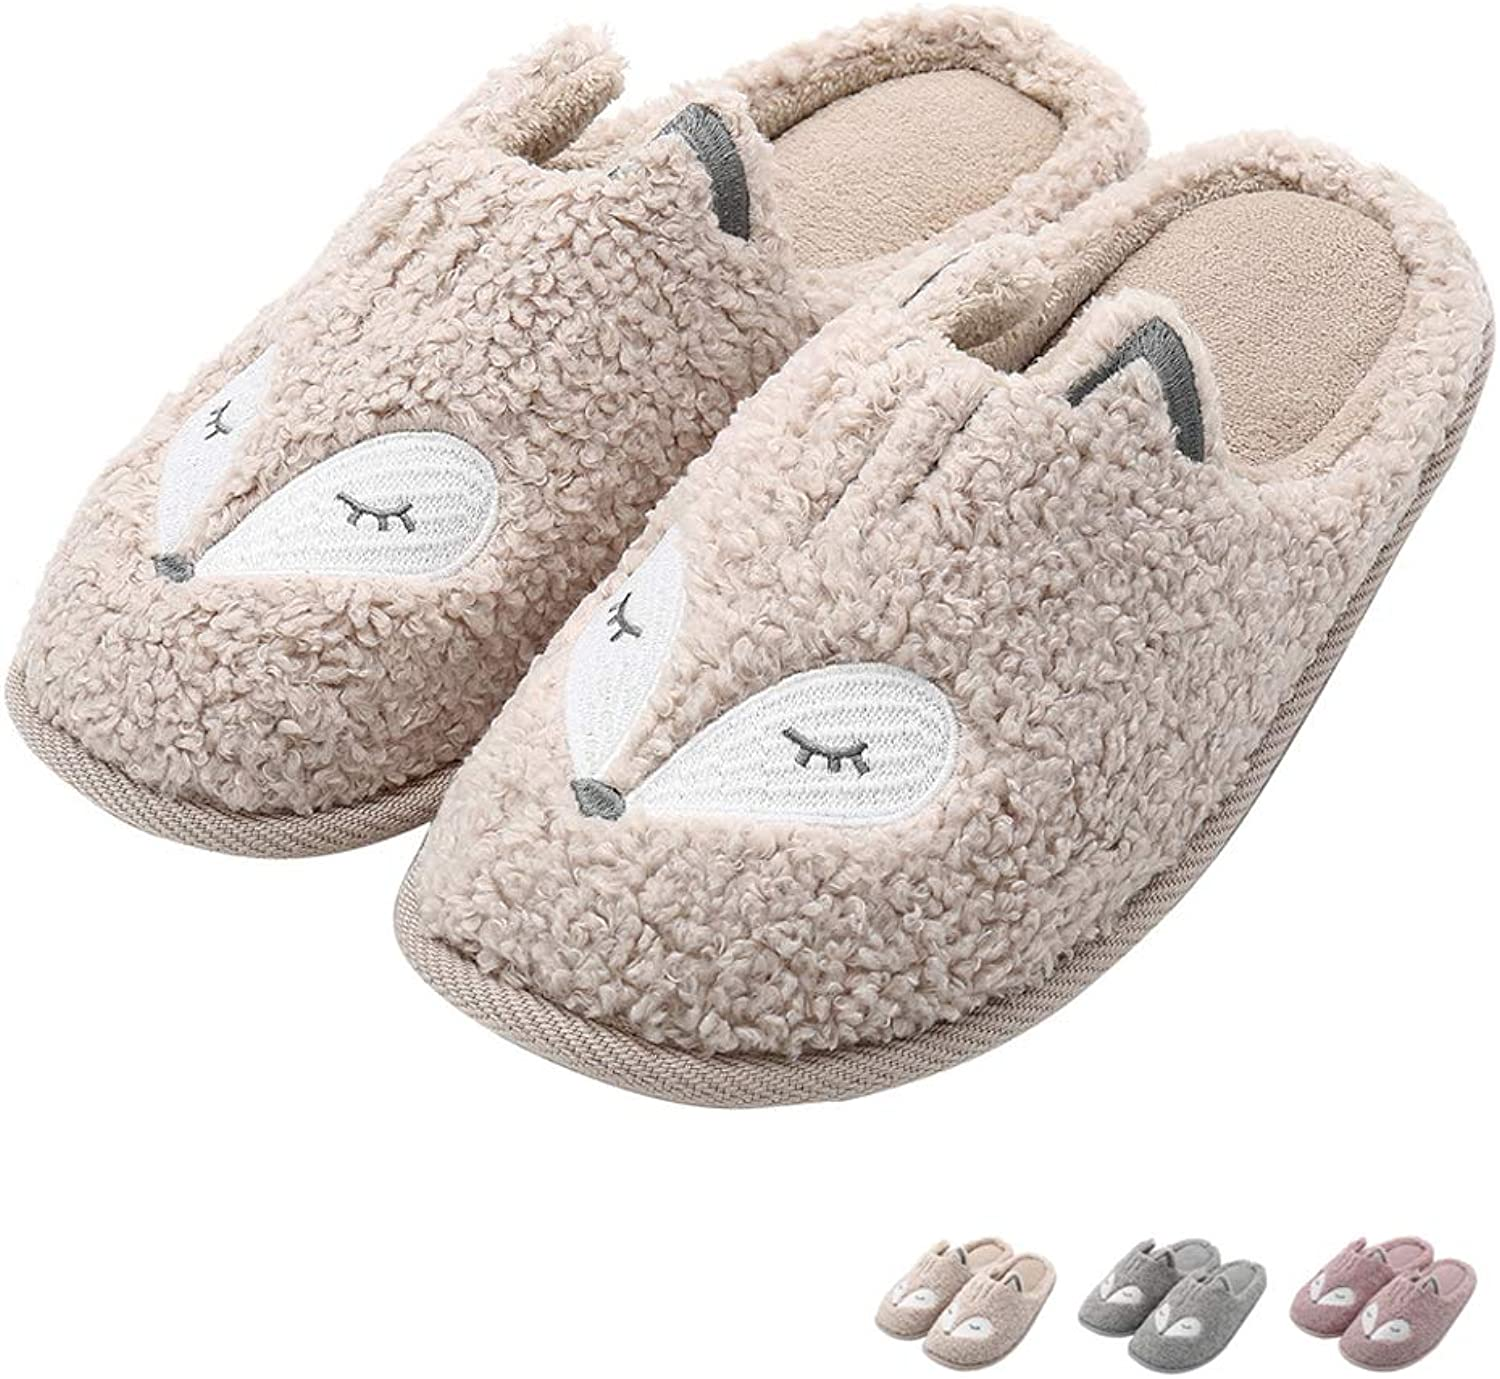 Women Warm Knit Wool Slippers Soft Plush Fleece Leather House Slippers Slip On Memory Foam Clog Home Indoor Slippers